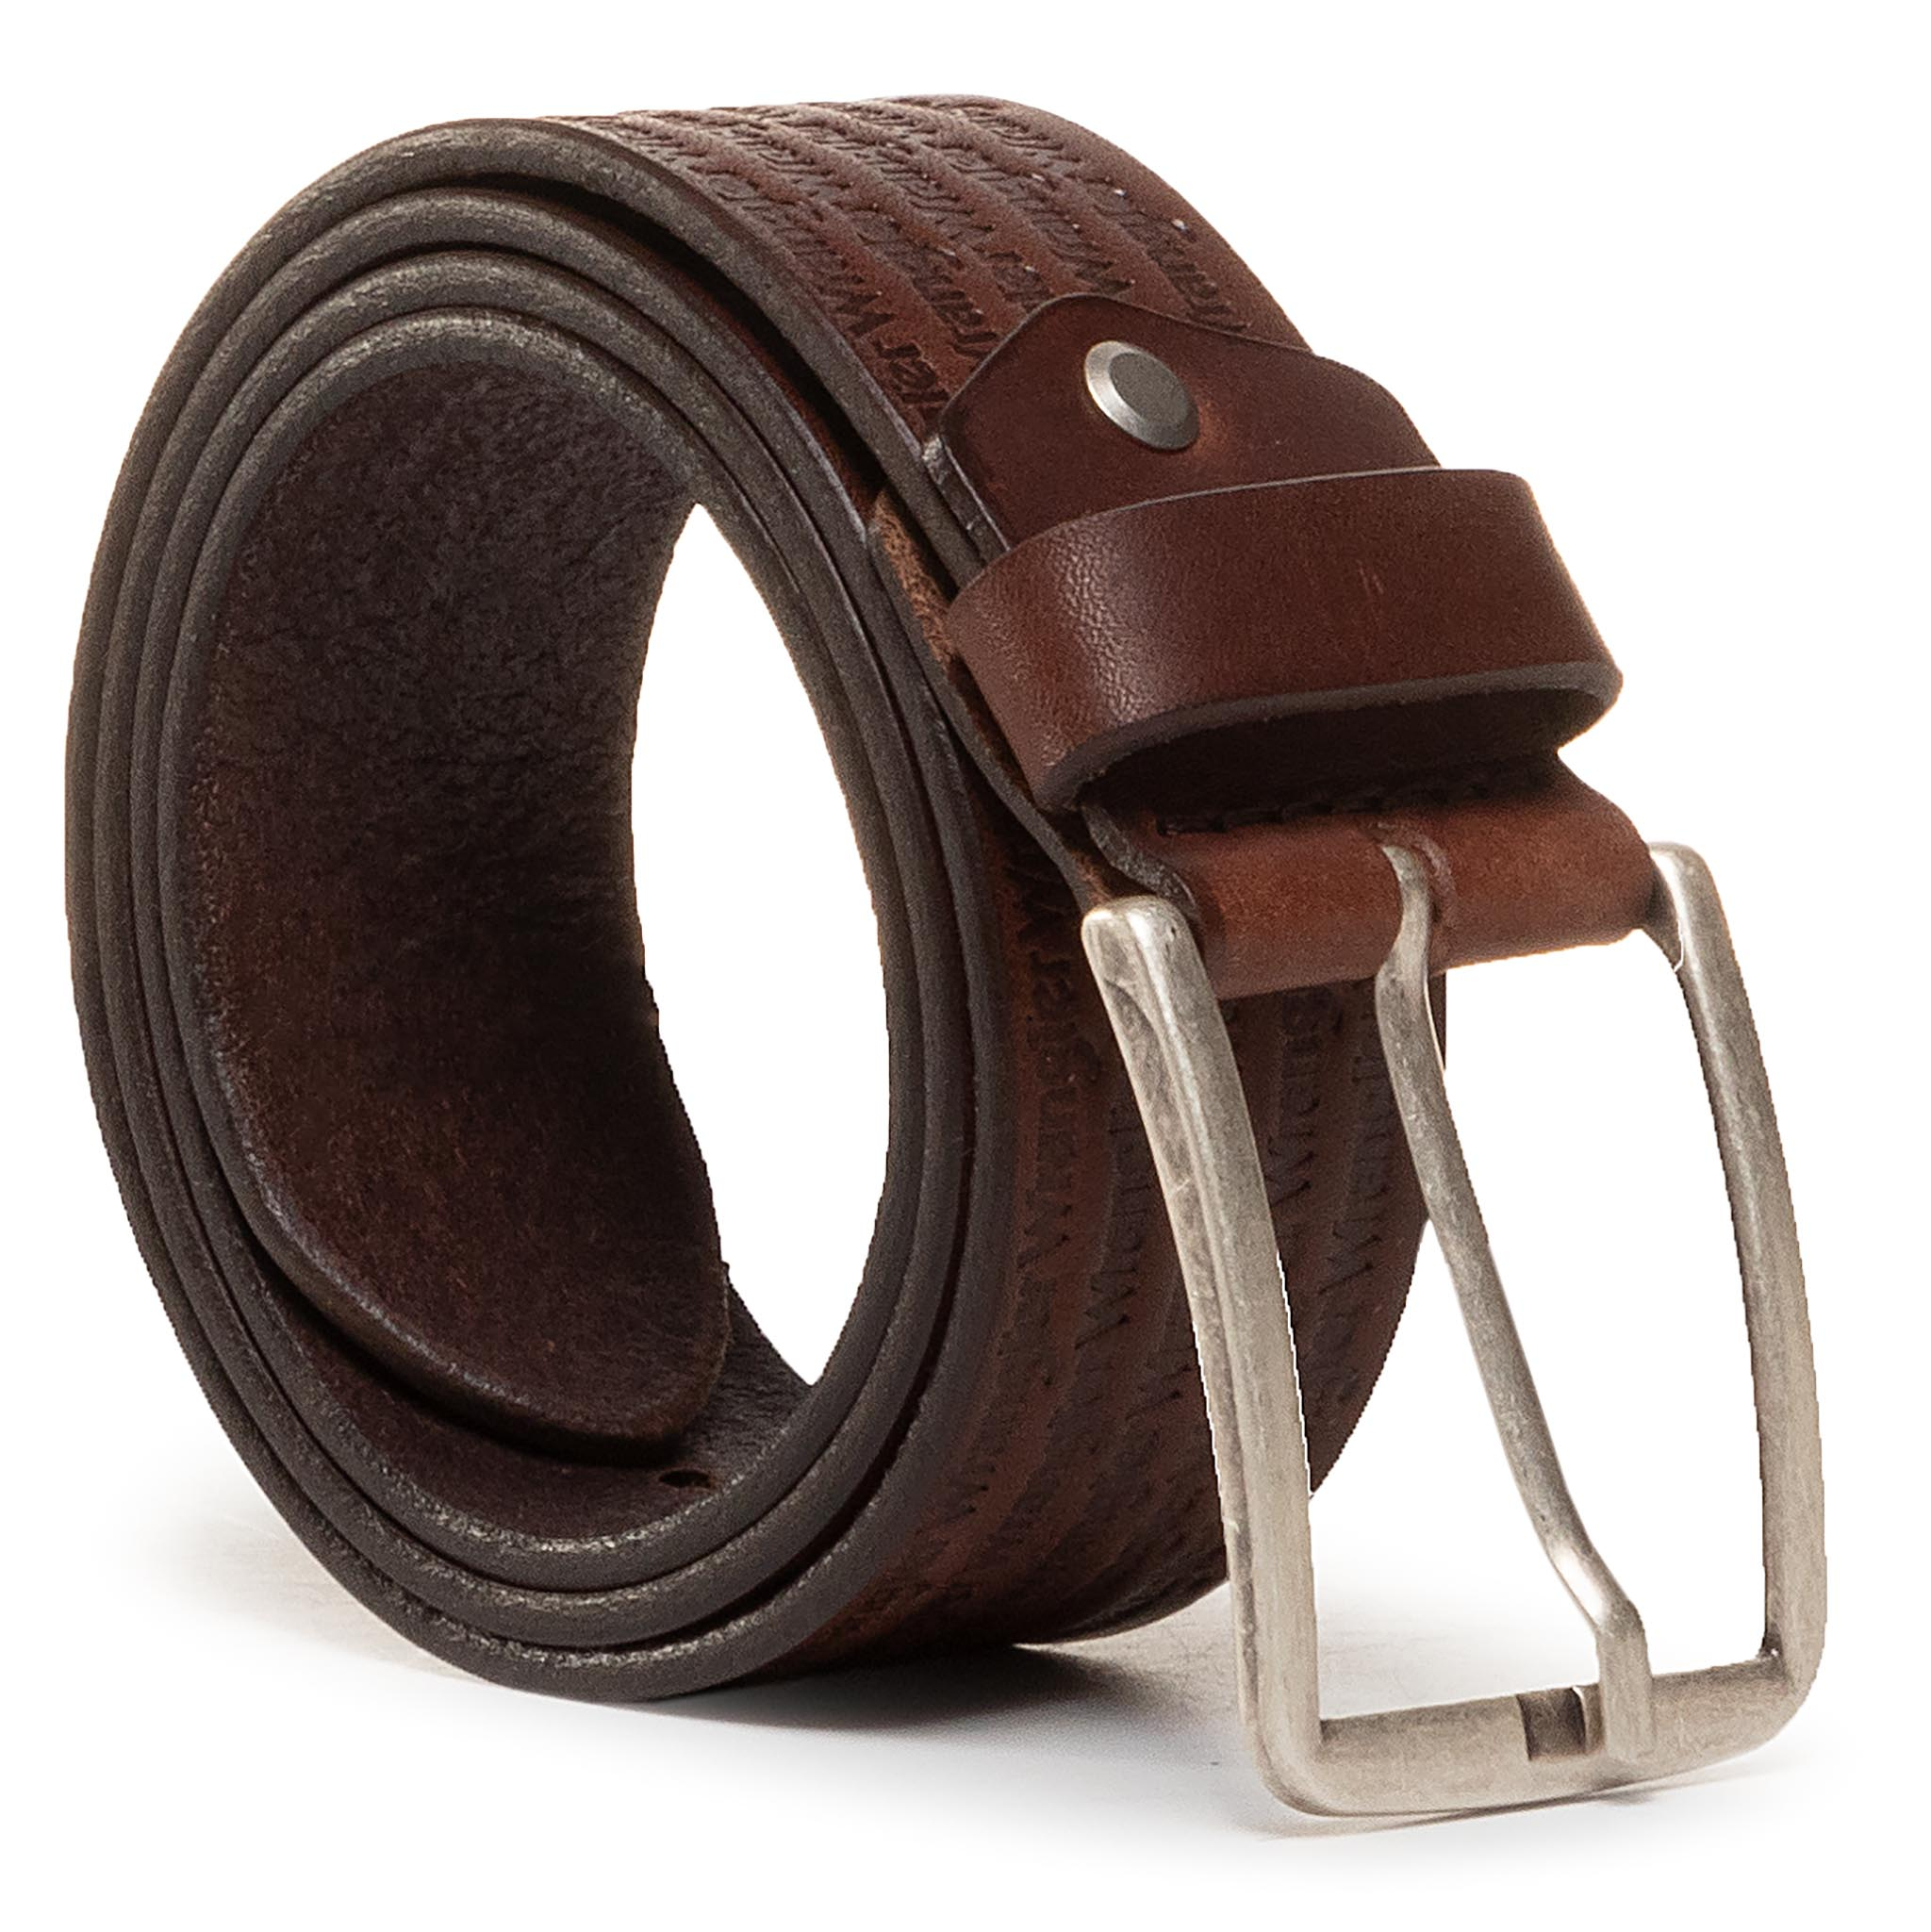 Curea Pentru Bărbați Wrangler - Allover Kabel Buckle W0c7u1x85 Brown imagine epantofi.ro 2021